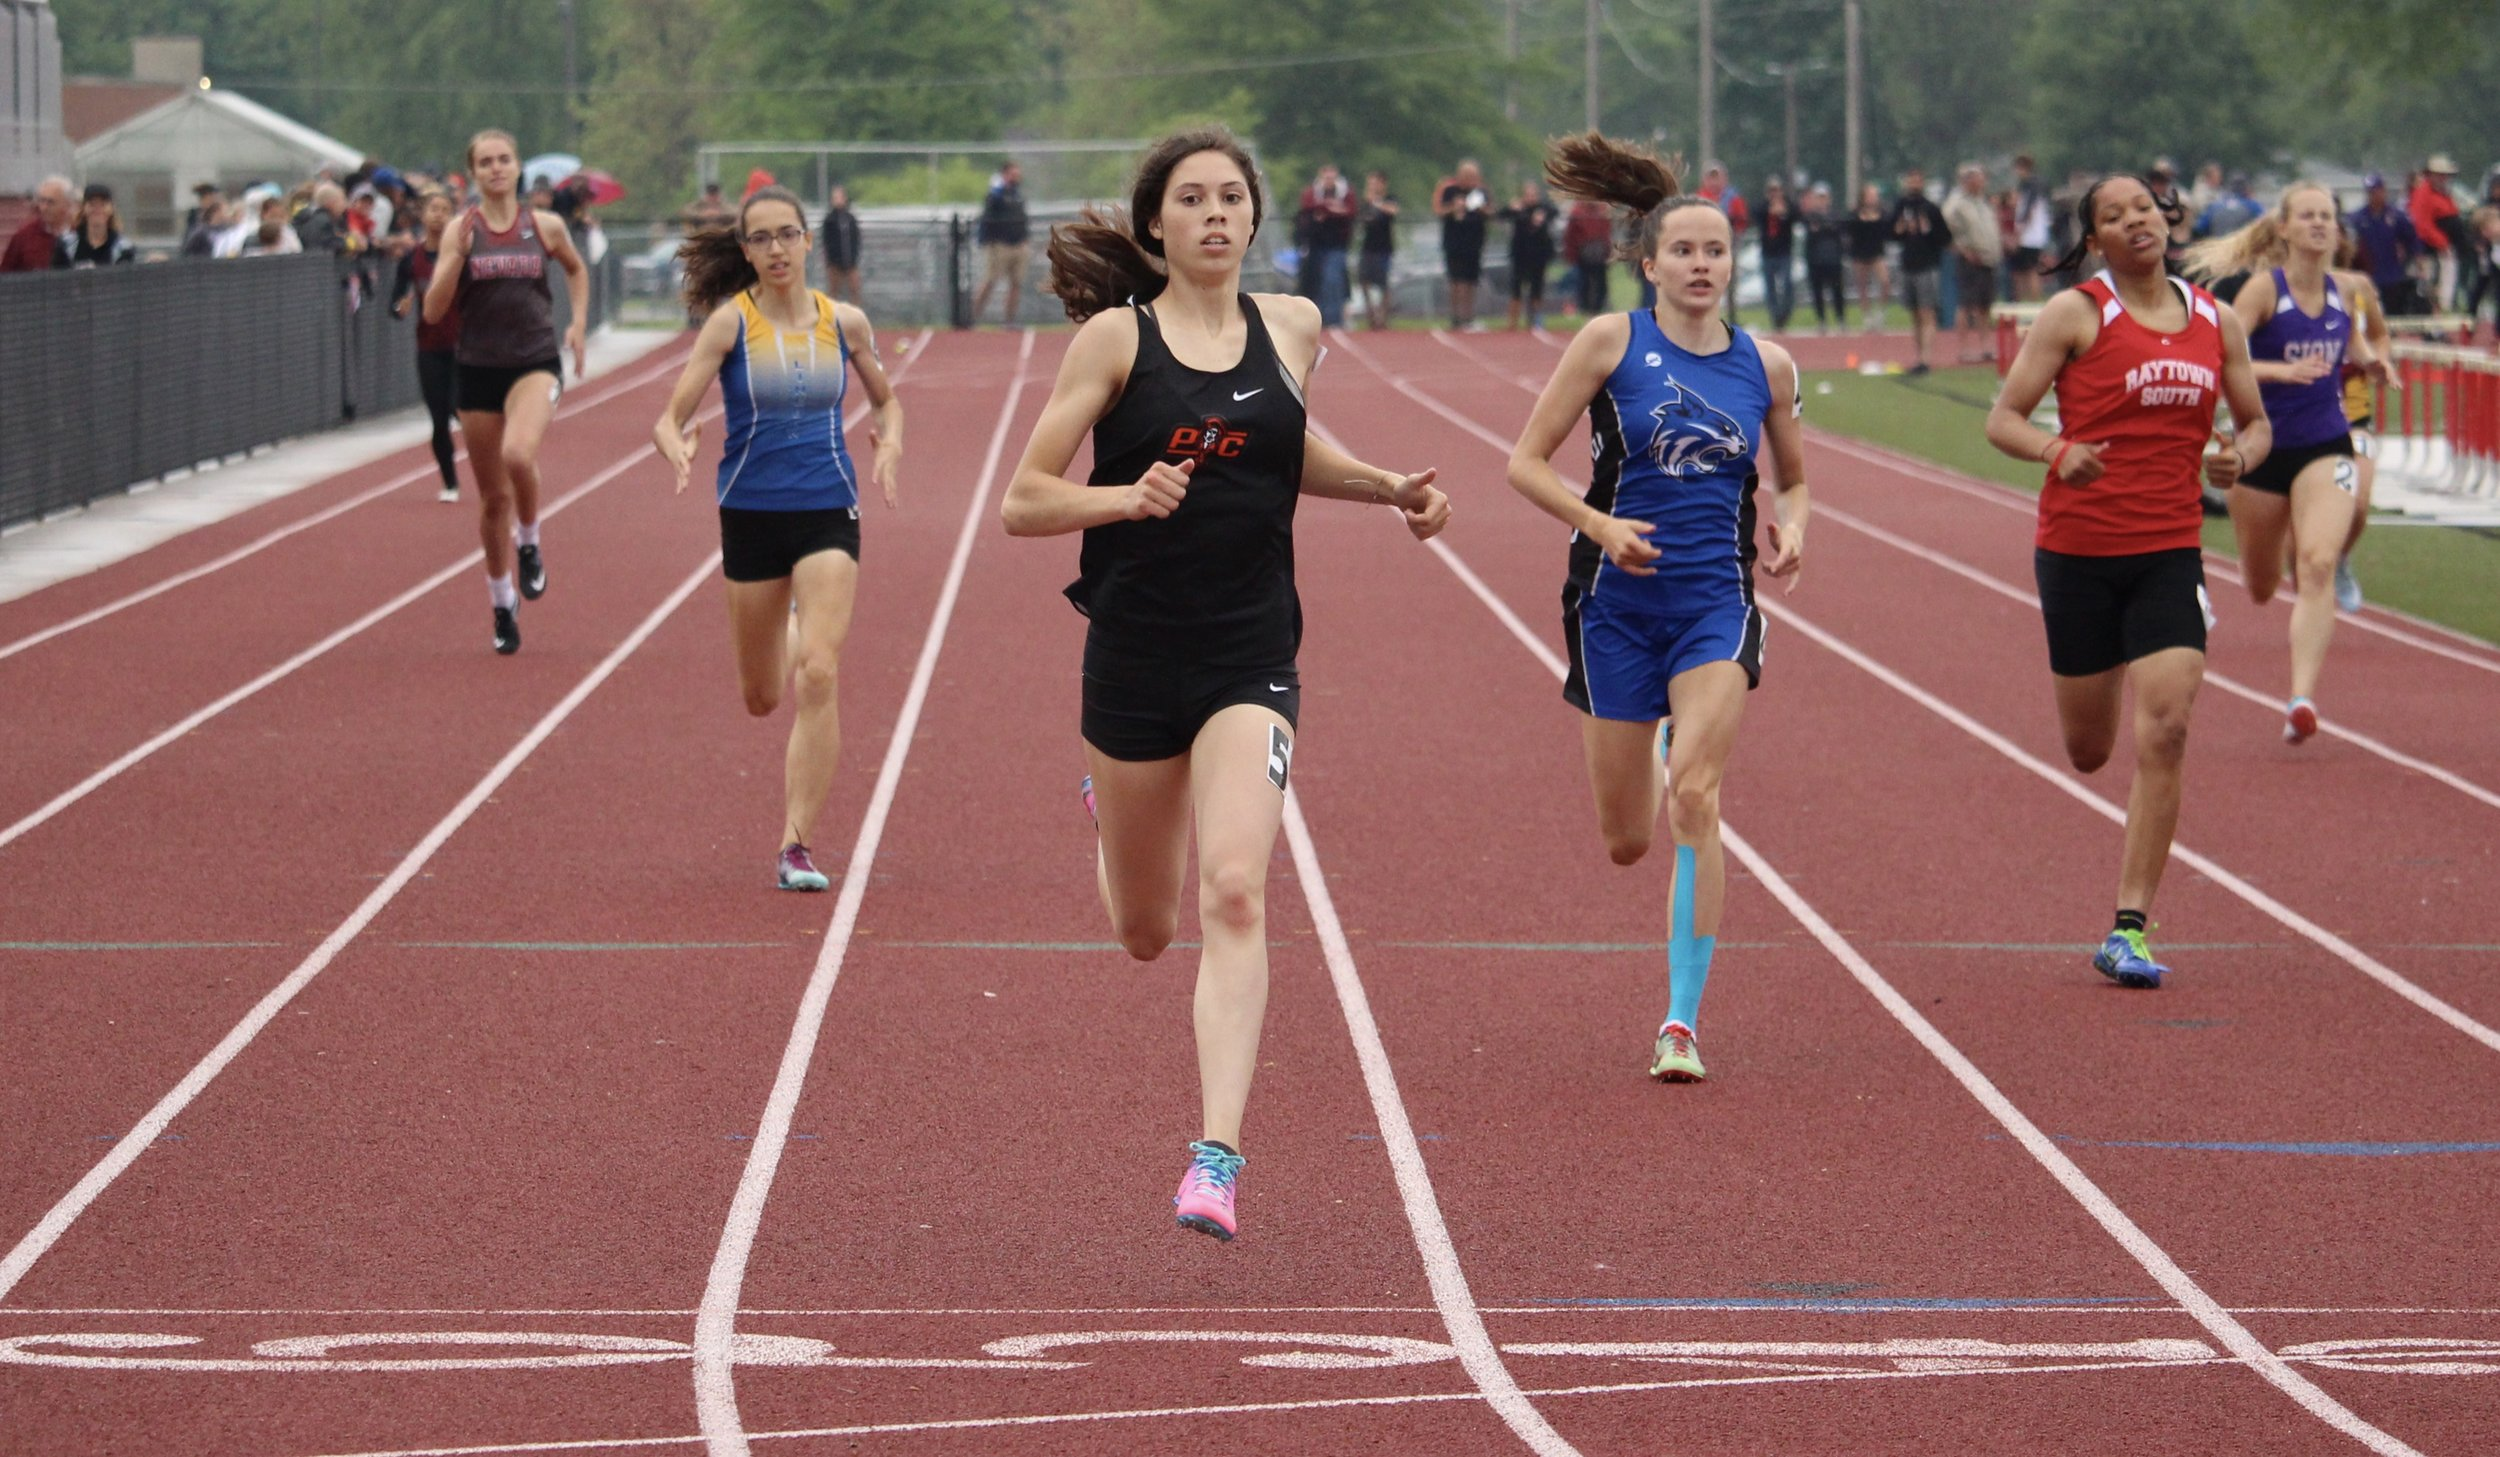 ROSS MARTIN/Special to the Citizen  Platte County sophomore Haley Luna, center, took first place in the 400-meter dash on Saturday, May 18 at the Class 4 Sectional 4 meet in Odessa. She set a new school record with a time of 58.28 seconds.